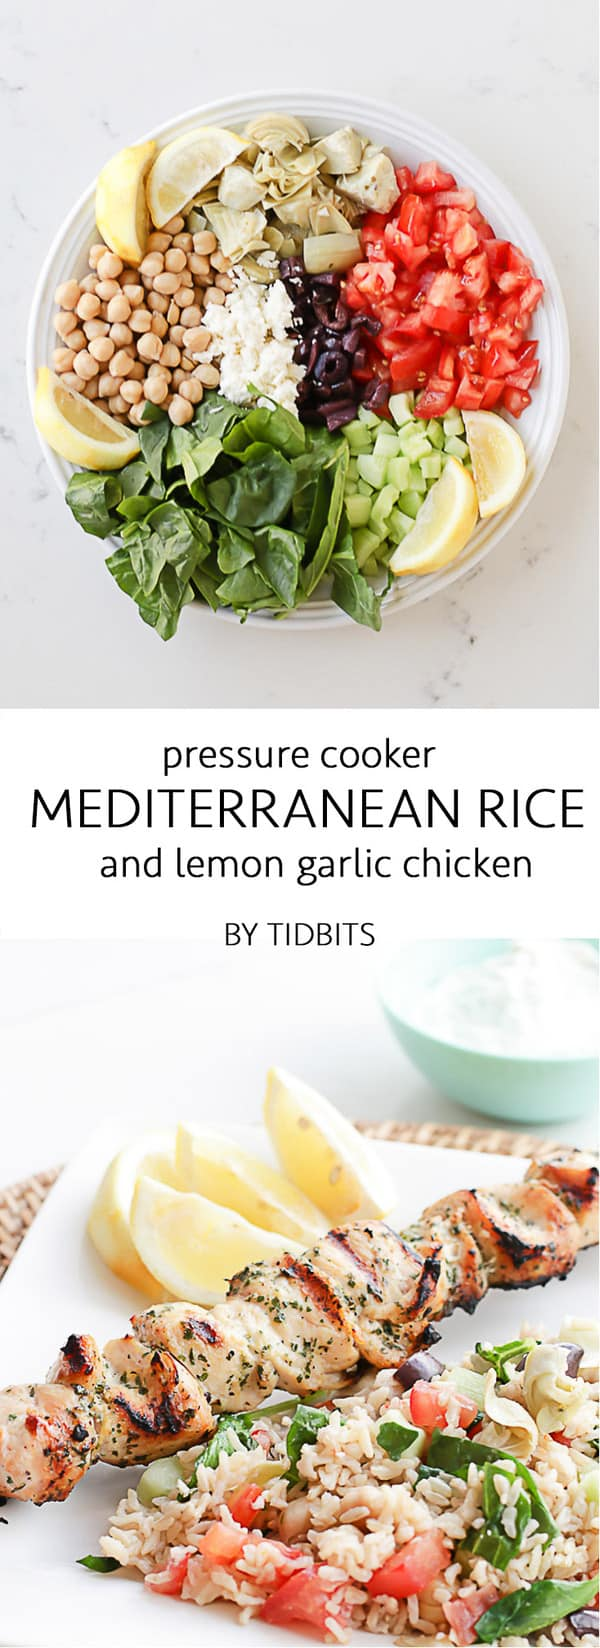 Pressure cooker (aka Instant Pot) lemony brown rice, packed with fresh veggies, and topped with a HUGE dollop of cool and creamy tzatziki sauce. Serve Pressure Cooker Mediterranean Rice with a side of grilled lemon garlic chicken to make a complete rockstar meal. Instant pot meal | chicken dinner | weeknight dinner #instantpotrice #pressurecookerdinner #chickendinner